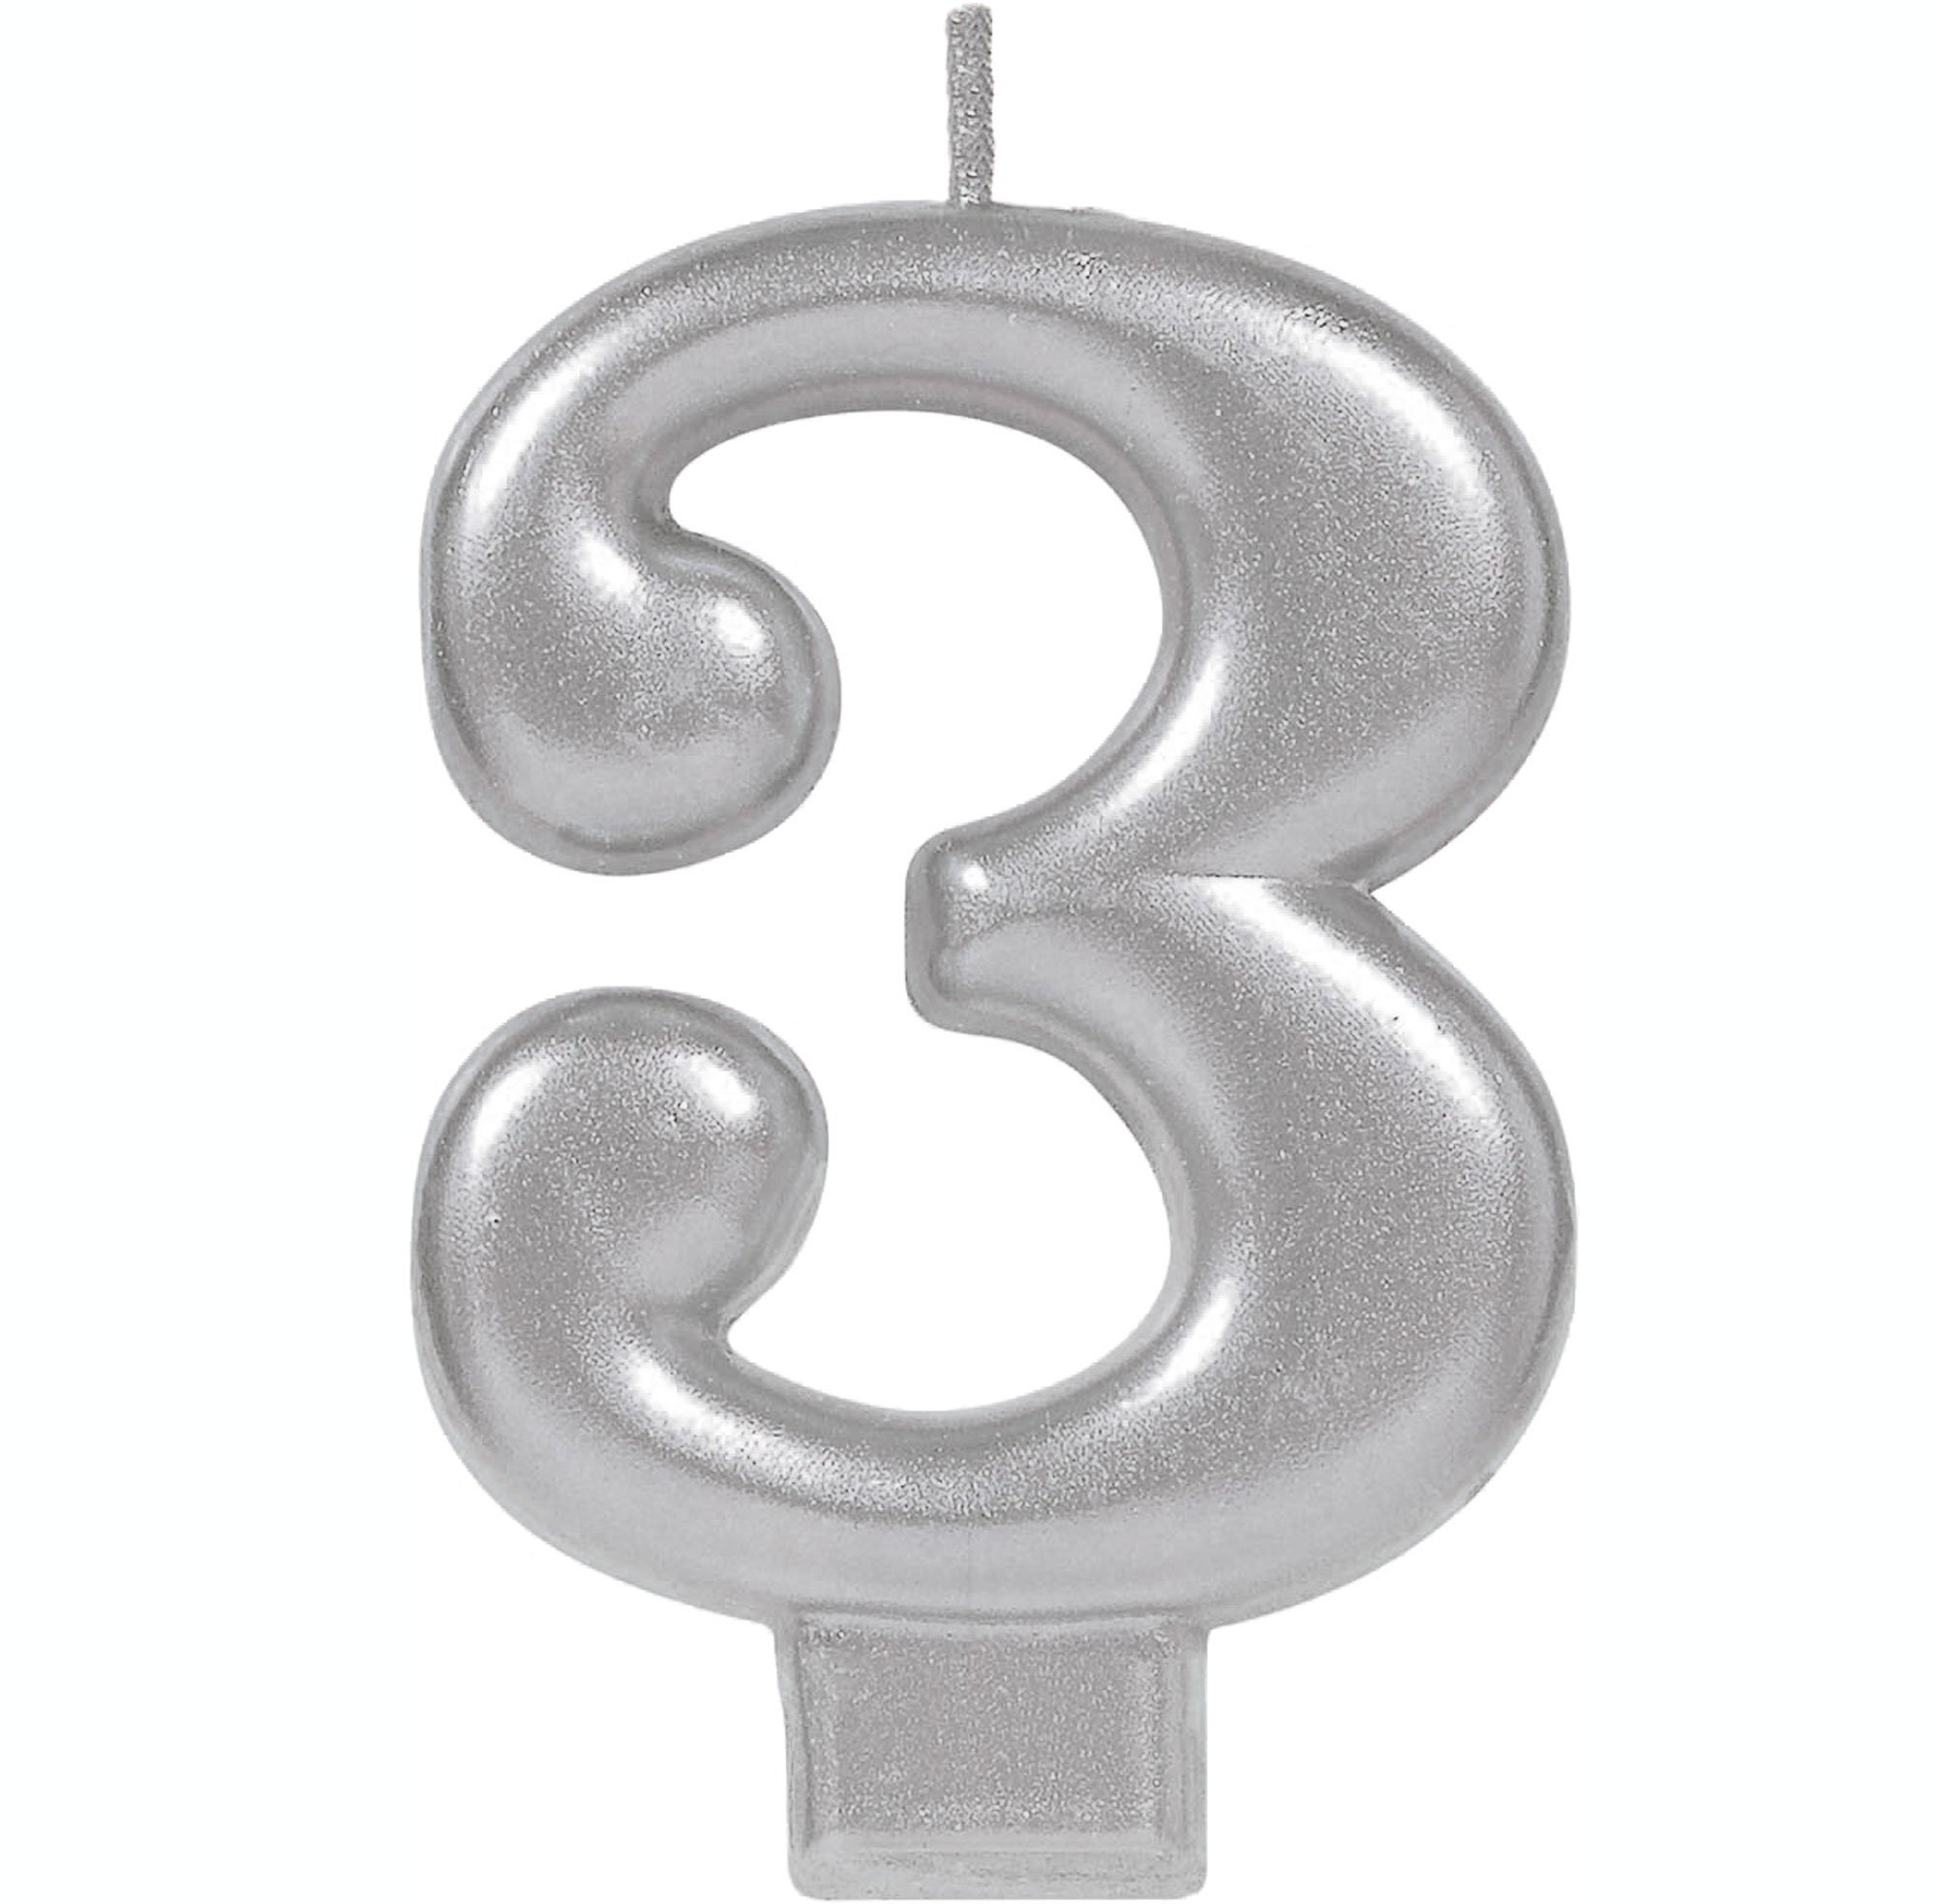 #3 Silver Metallic Numeral Moulded Candle